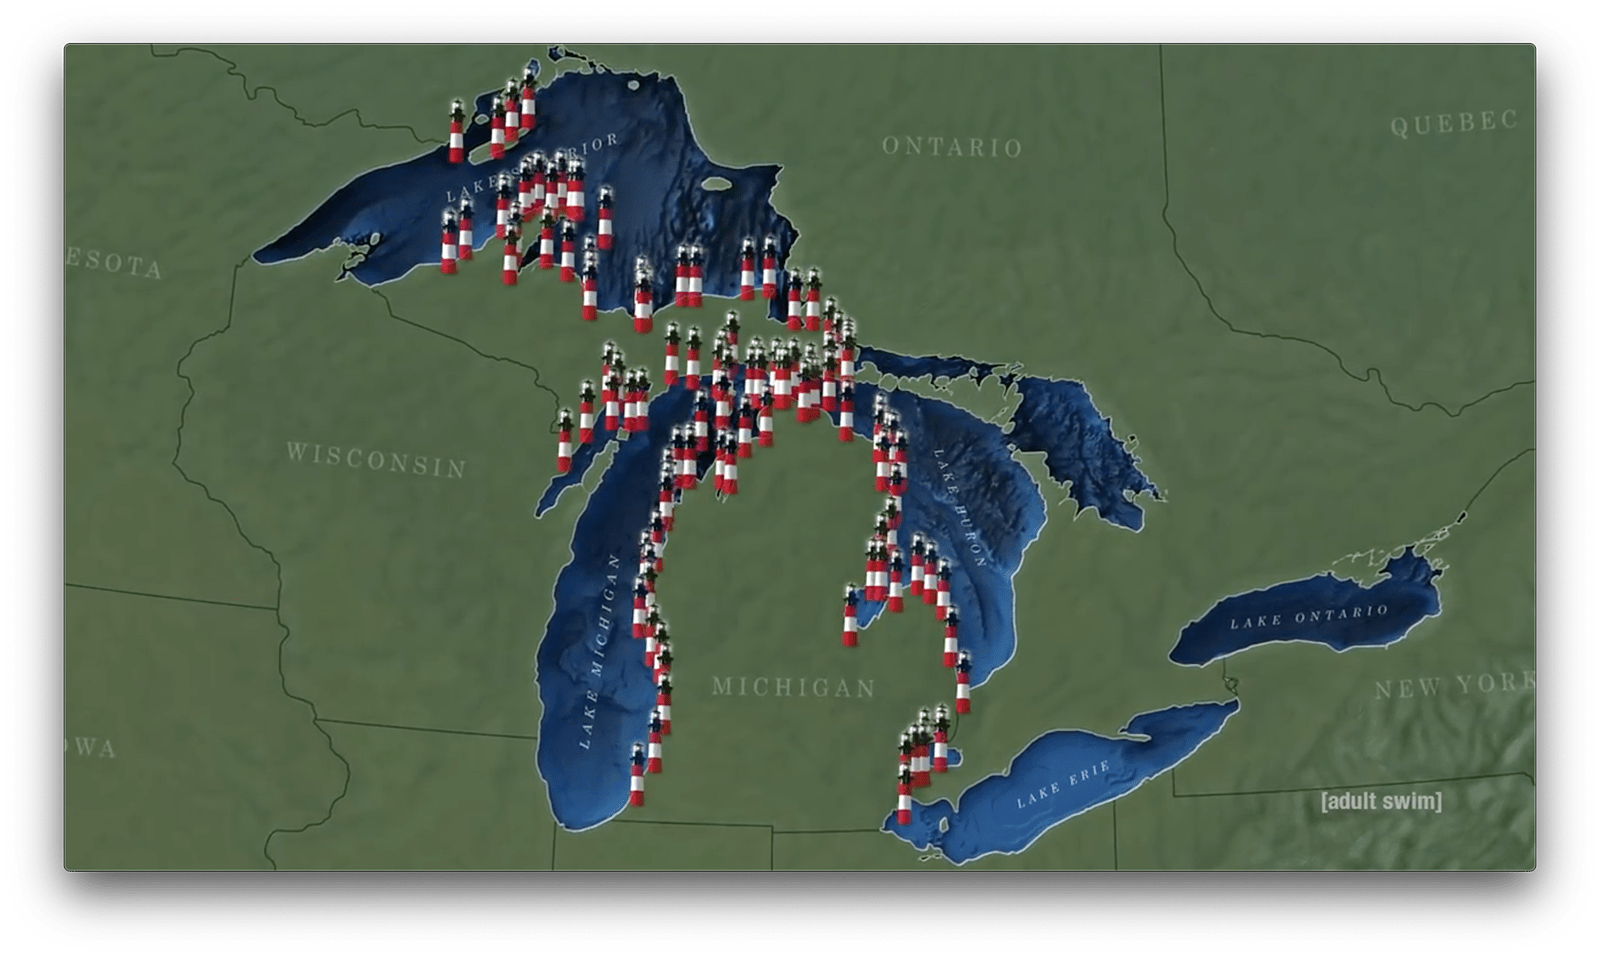 Lighthouse map of Michigan